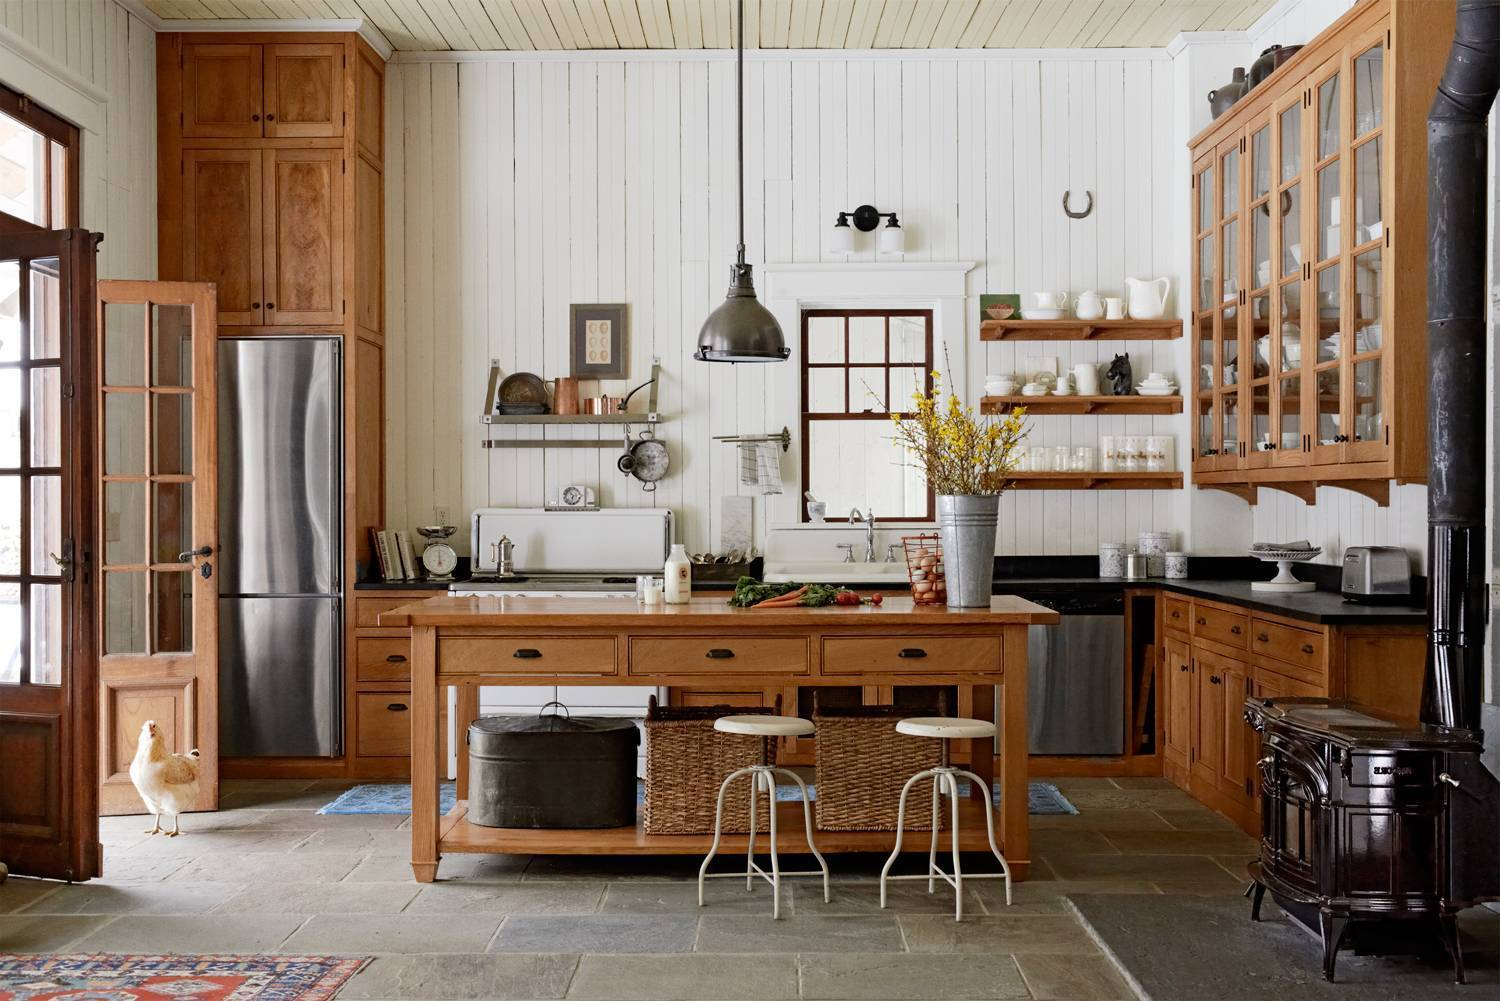 Modern country kitchen made of wood